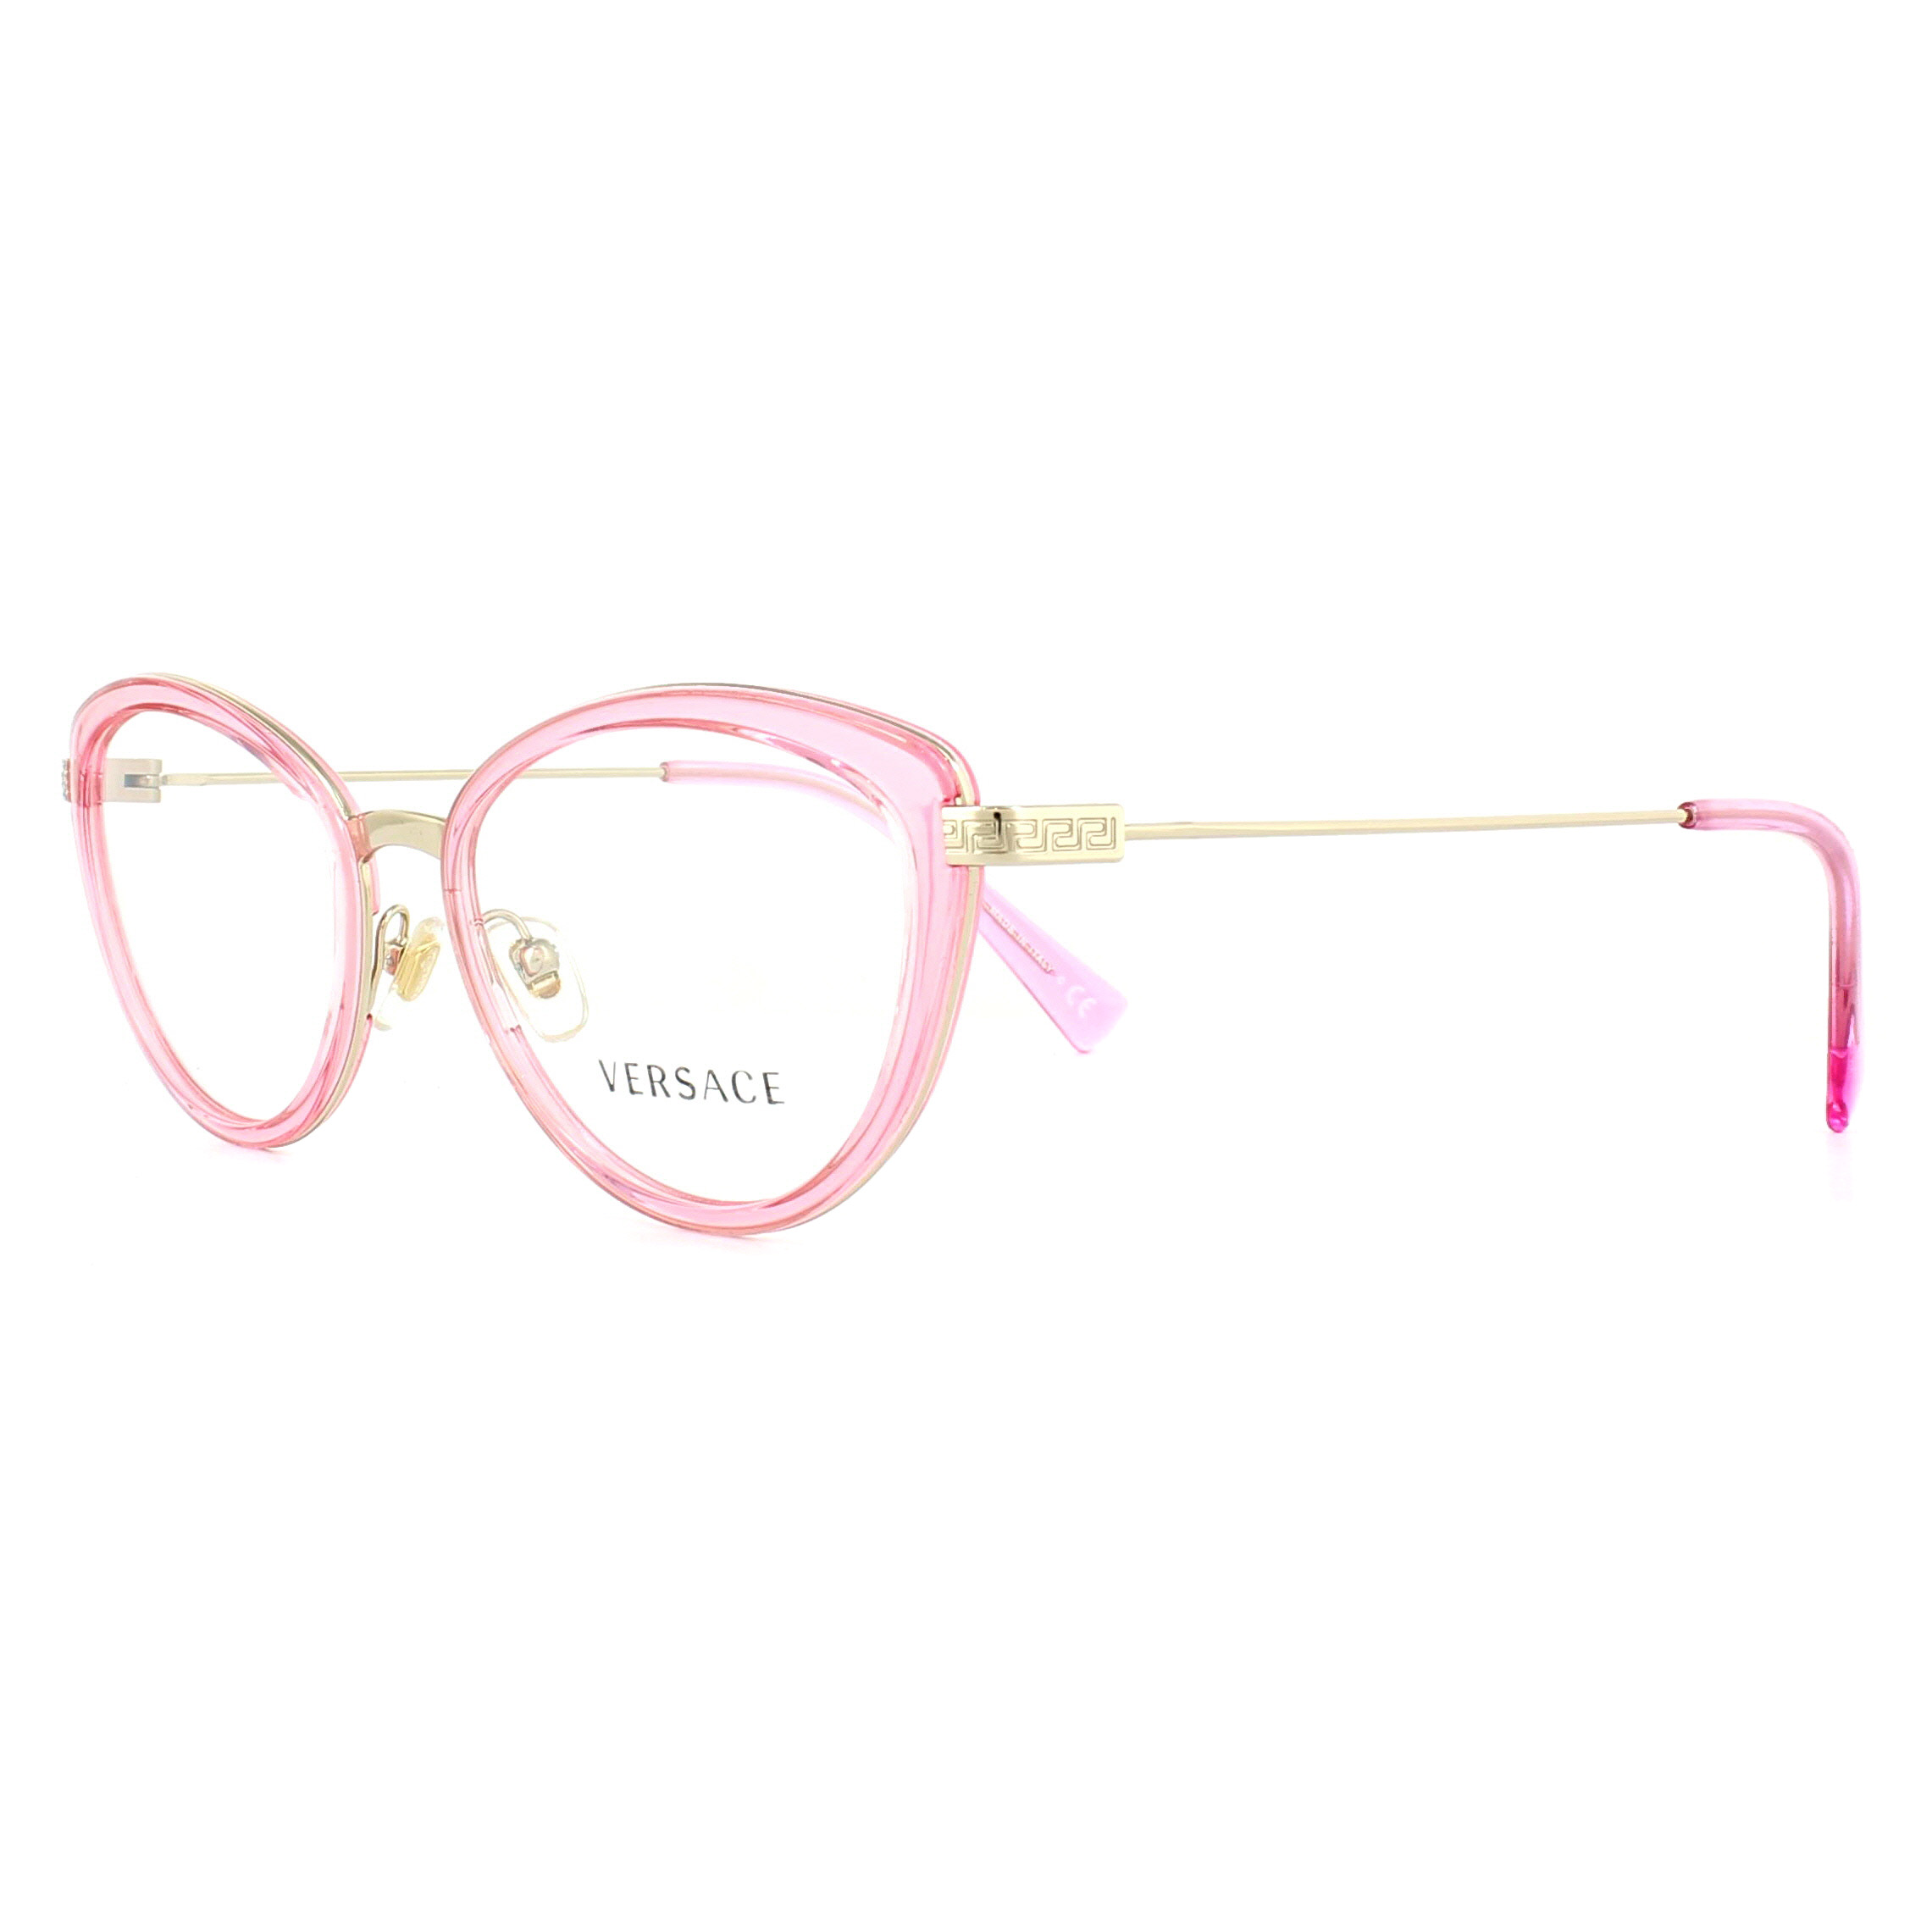 2ae3972ebba Versace Gl Frames 1244 1404 Pink Transpa And Pale Gold 53mm